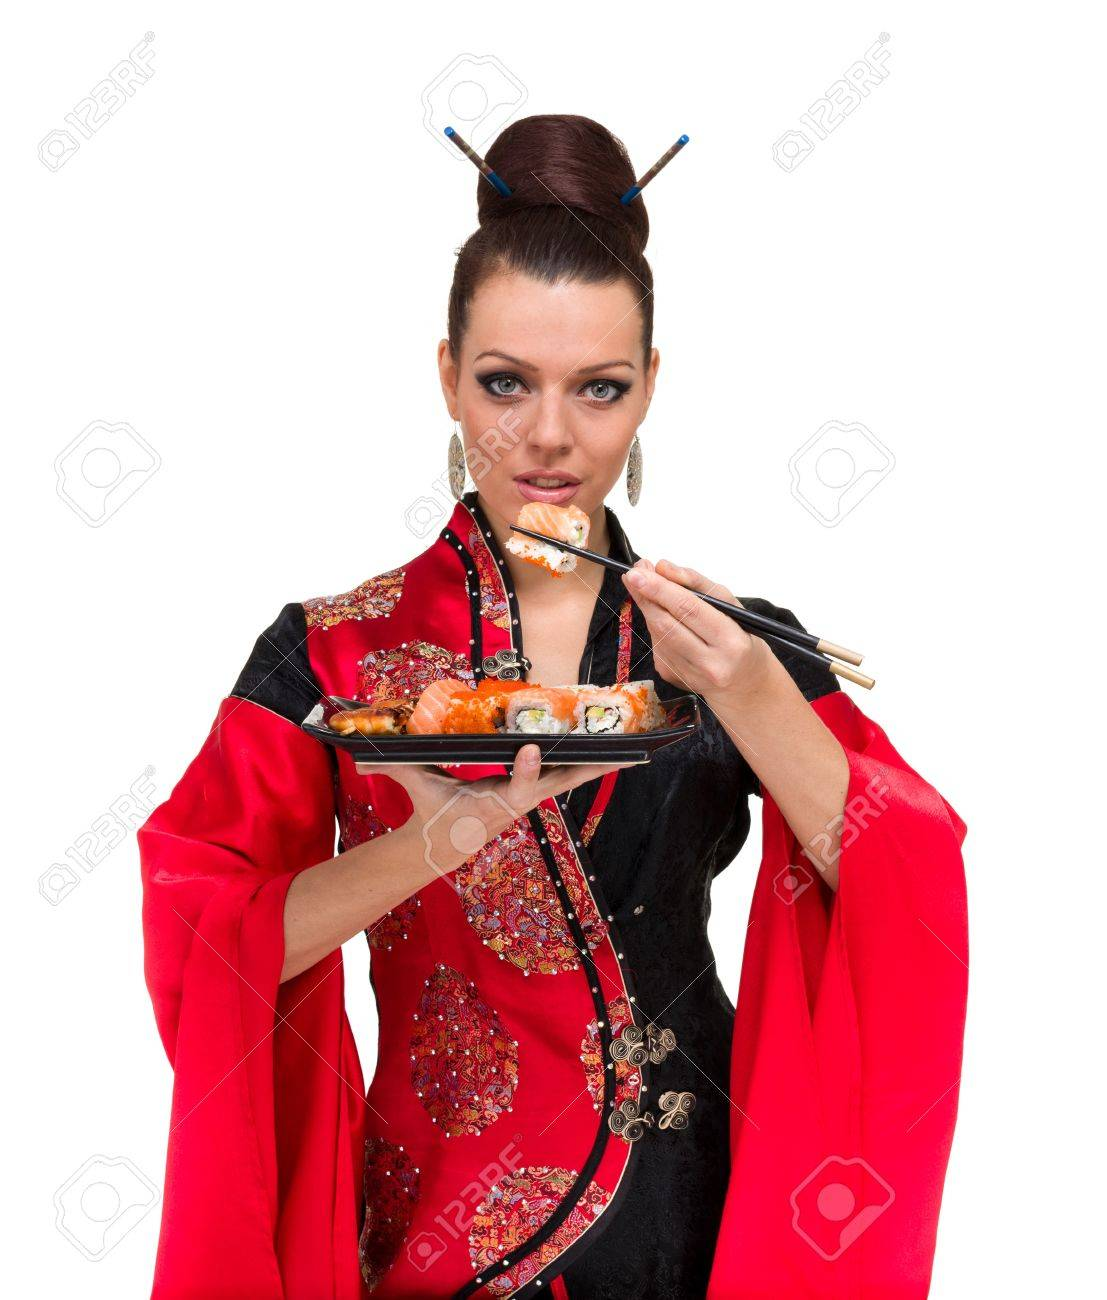 Attractive woman in traditional dress with sushi, isolated on white background Stock Photo - 15531571